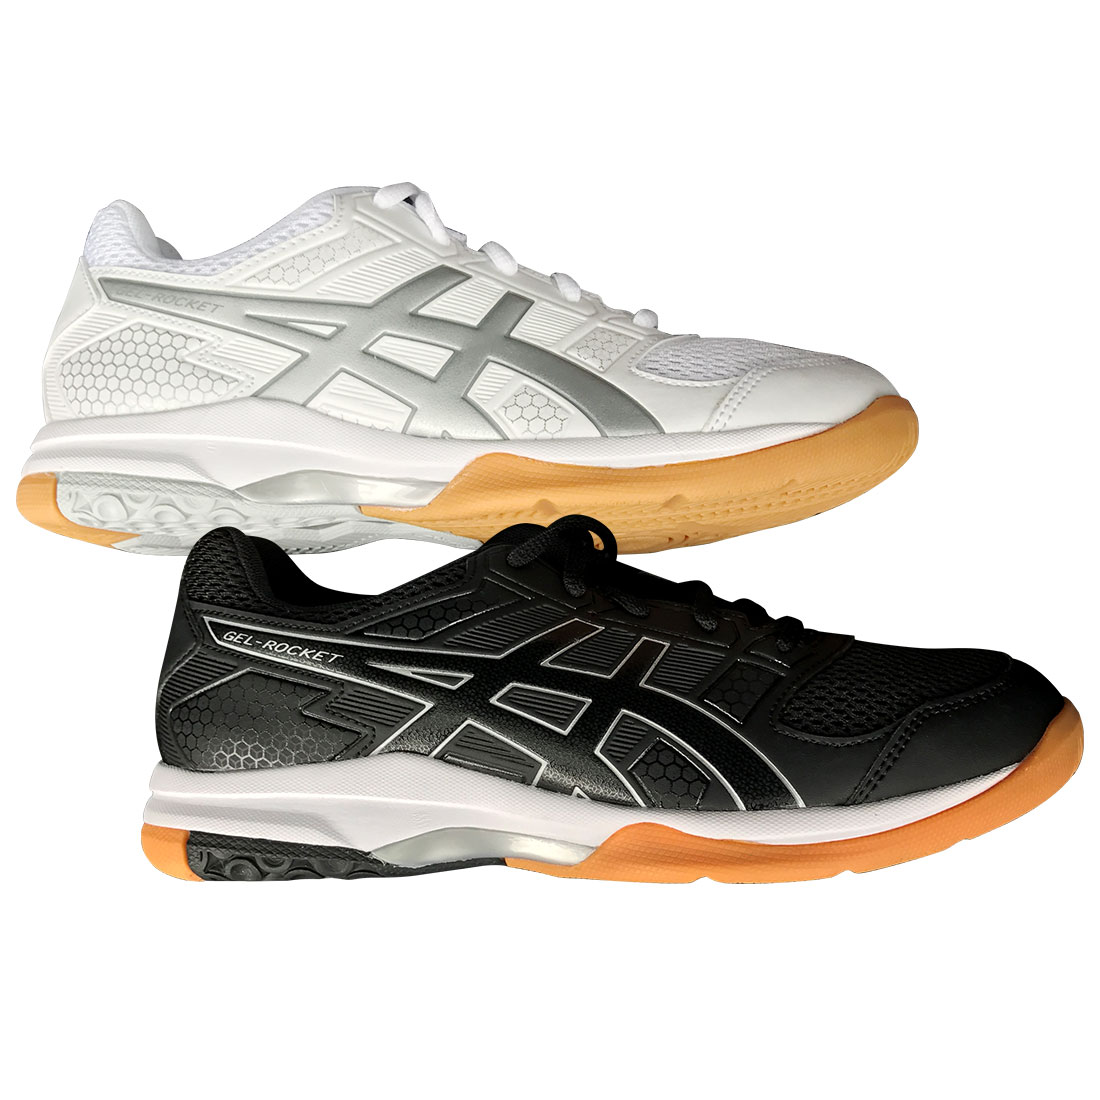 eb8f9eb8ef4a2 Asics Gel-Rocket 8 Indoor Shoe - longstreth.com